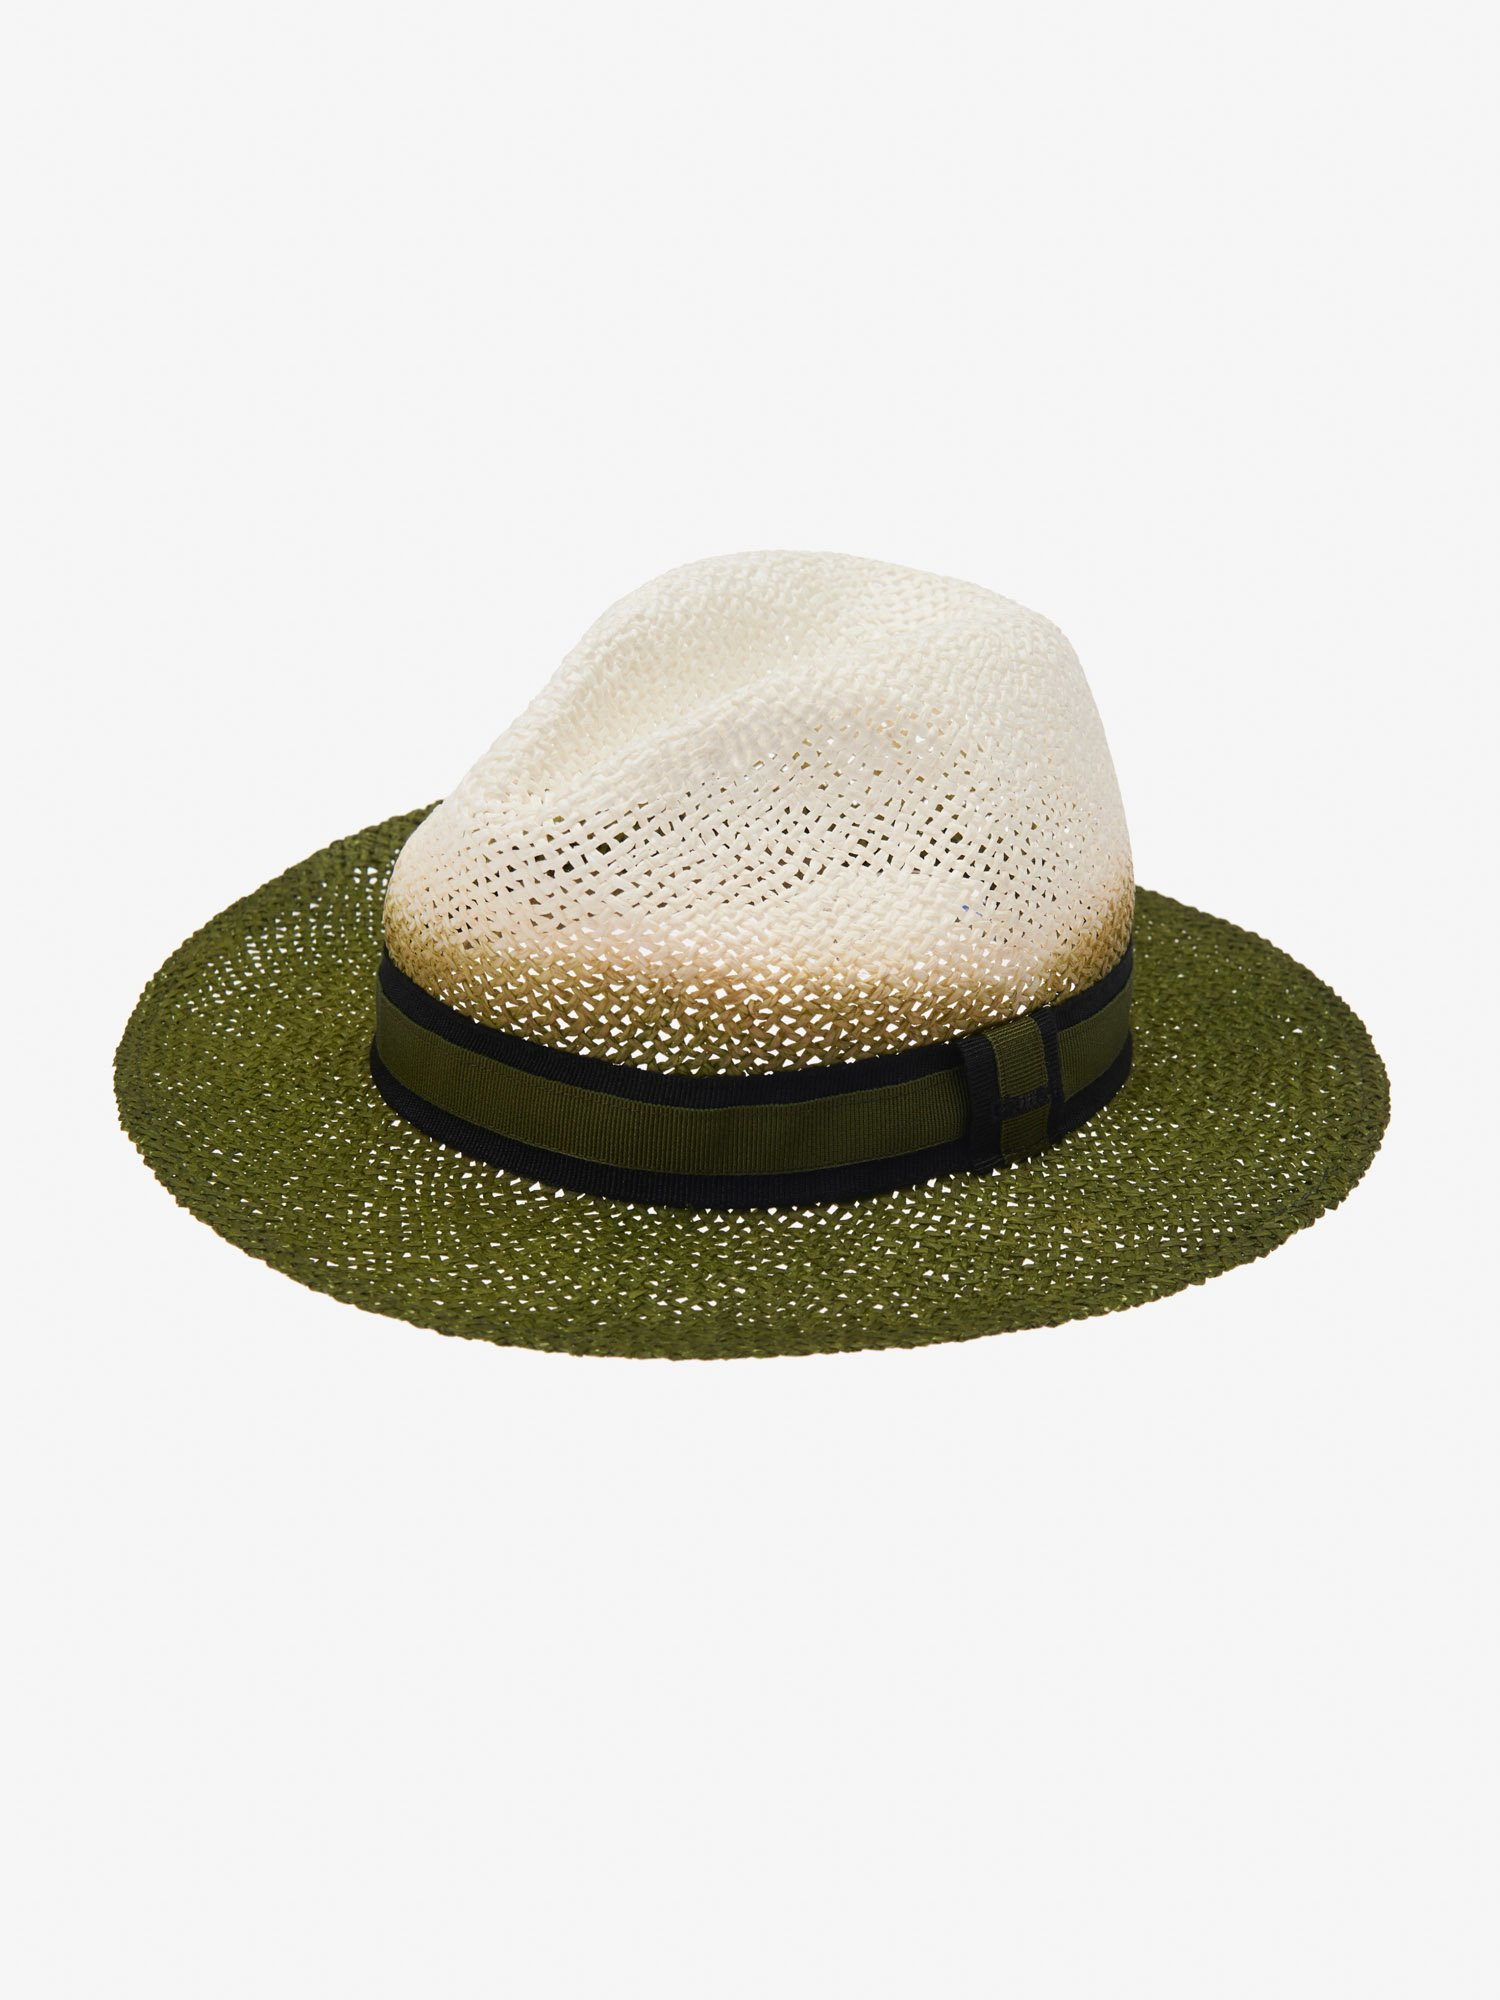 Blauer - PANAMA HAT IN BICOLOR PAPER - Dusty Green - Blauer